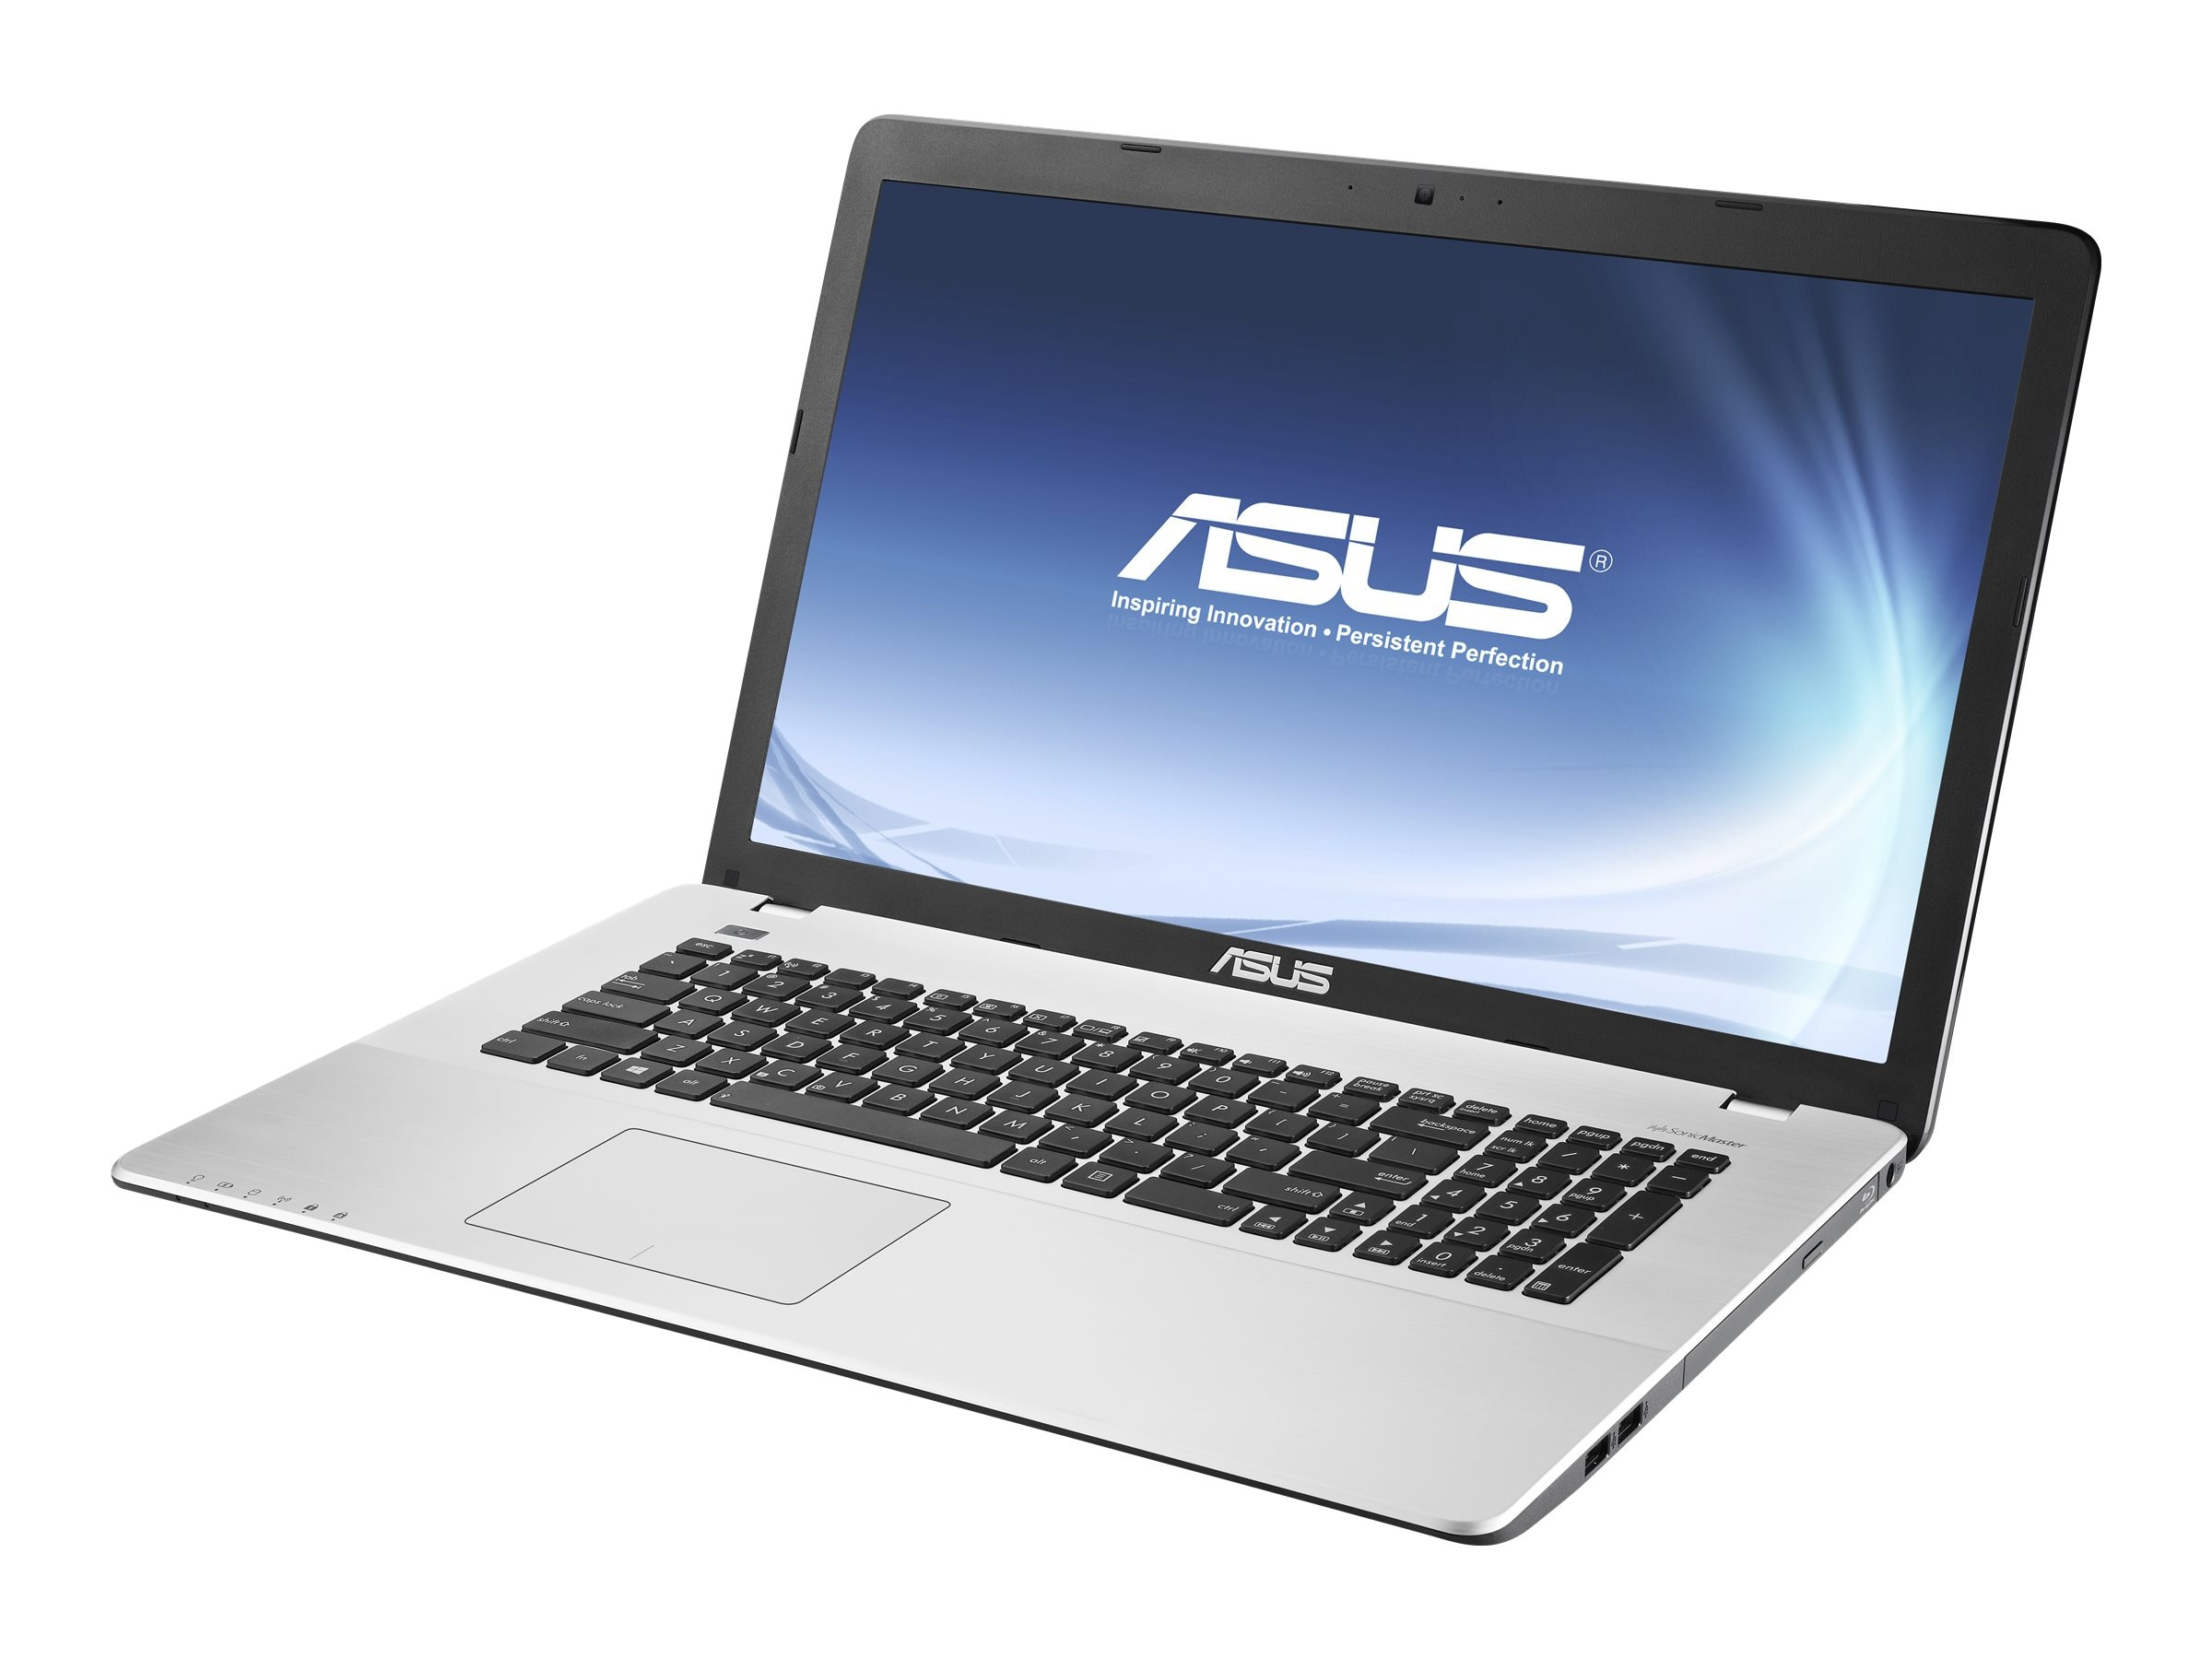 Asus X750JN-DB71 Core i7-4700HQ 2.4GHz 8GB 2TB 17.3 W8.1-64 Dark Gray